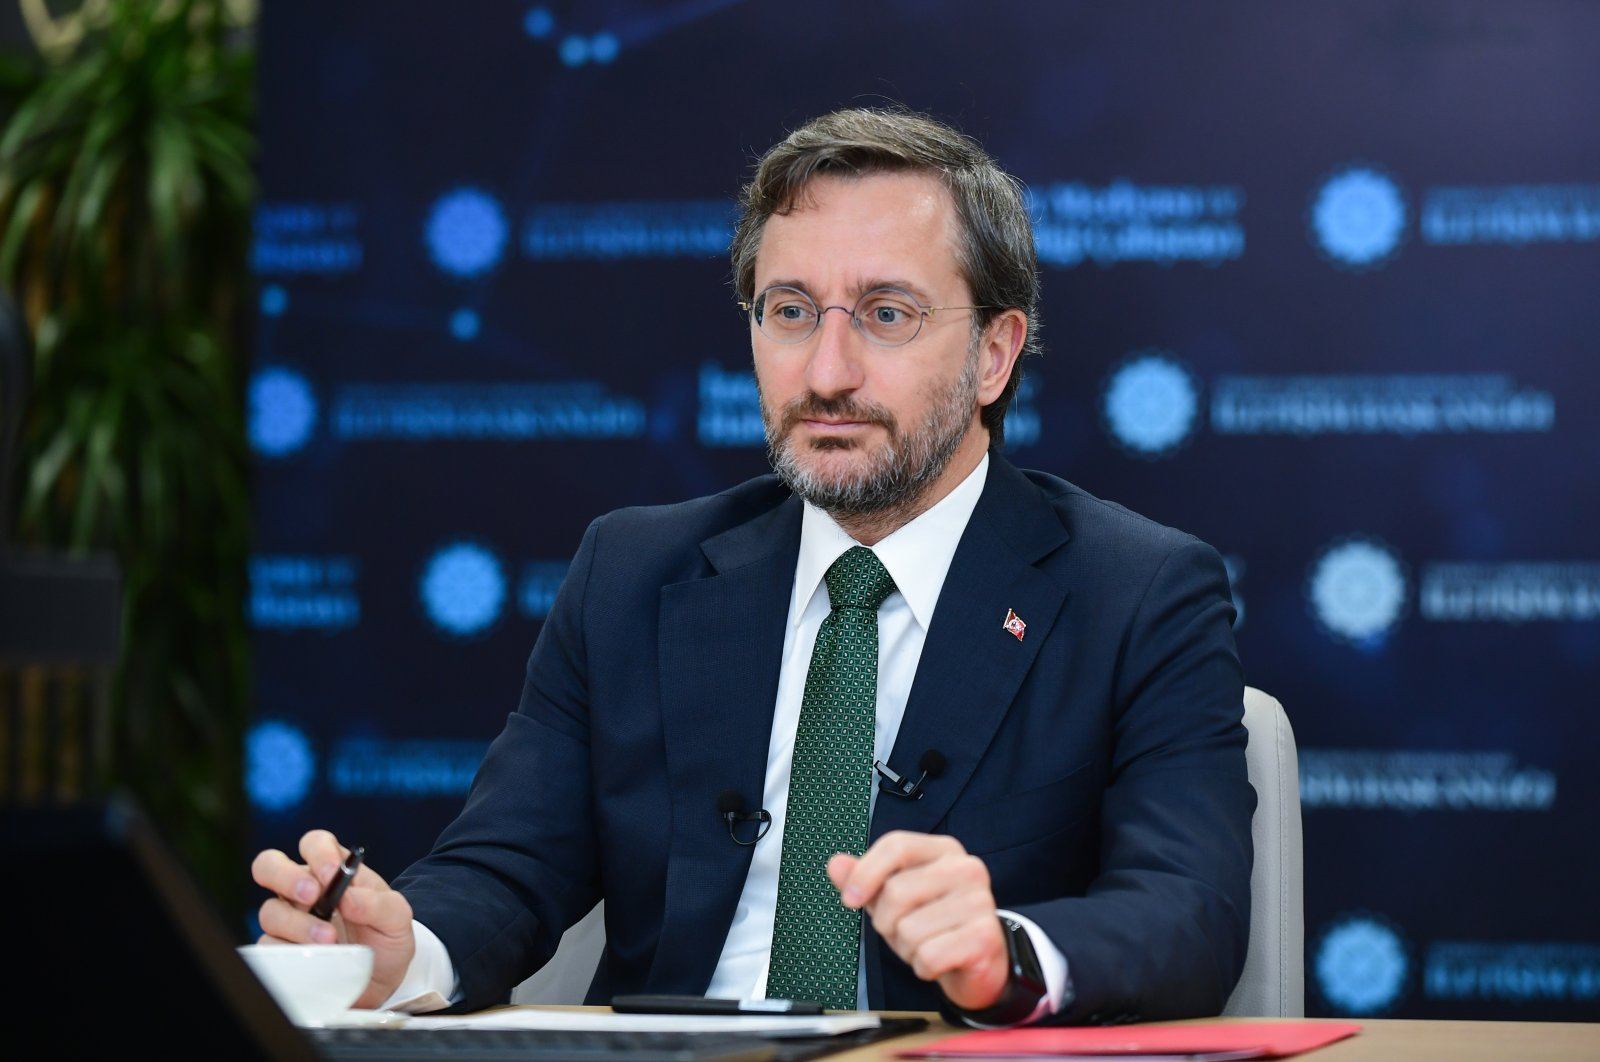 Turkey's Presidential Communications Director Fahrettin Altun is seen during an online conference in the capital Ankara, Turkey, July 2, 2021. (AA Photo)